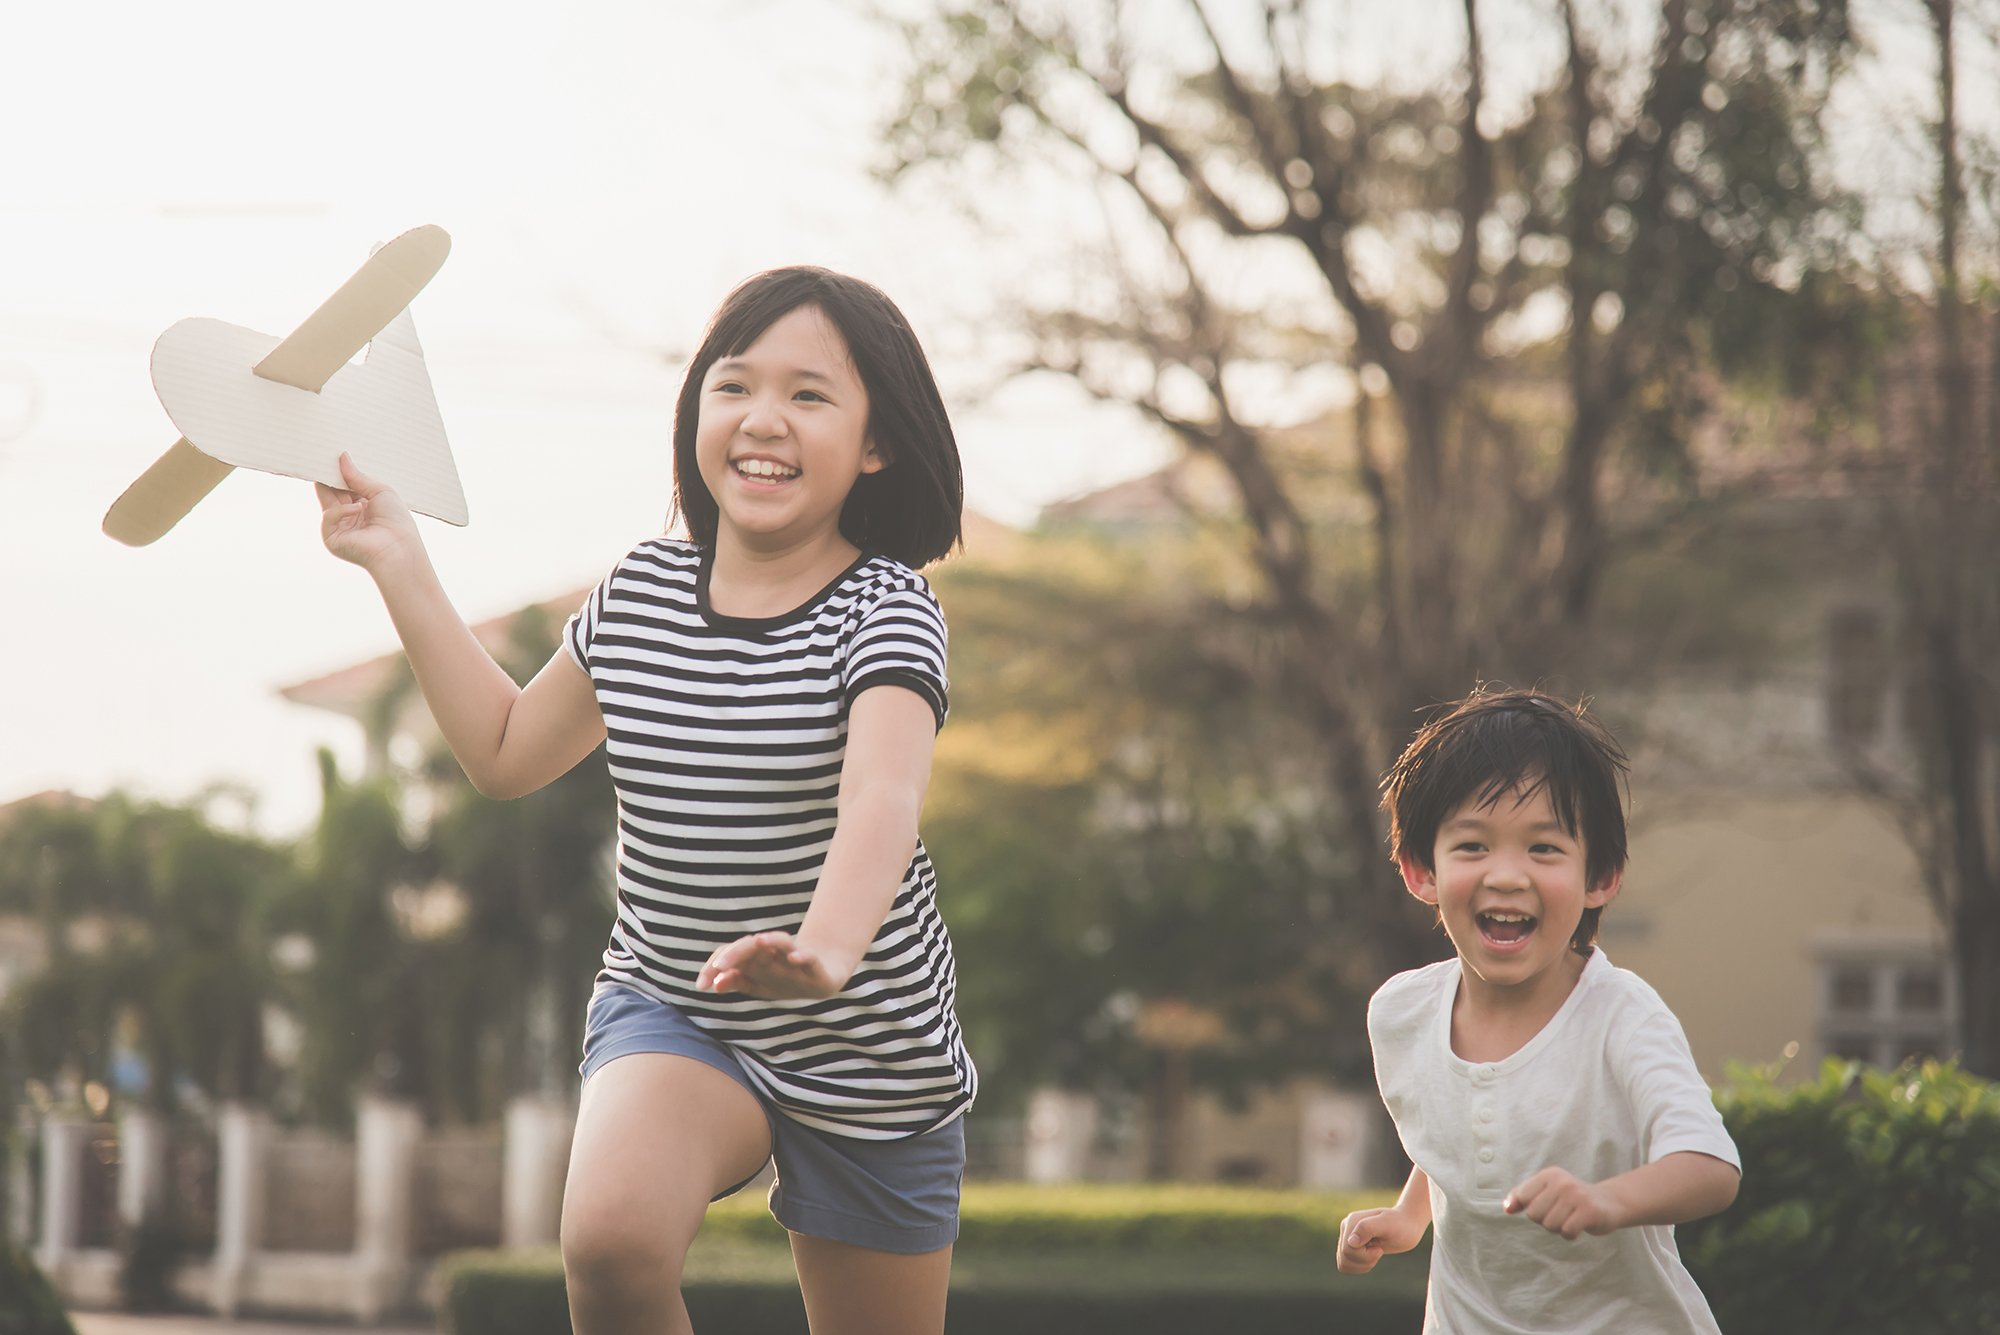 kids playing outside with paper airplane